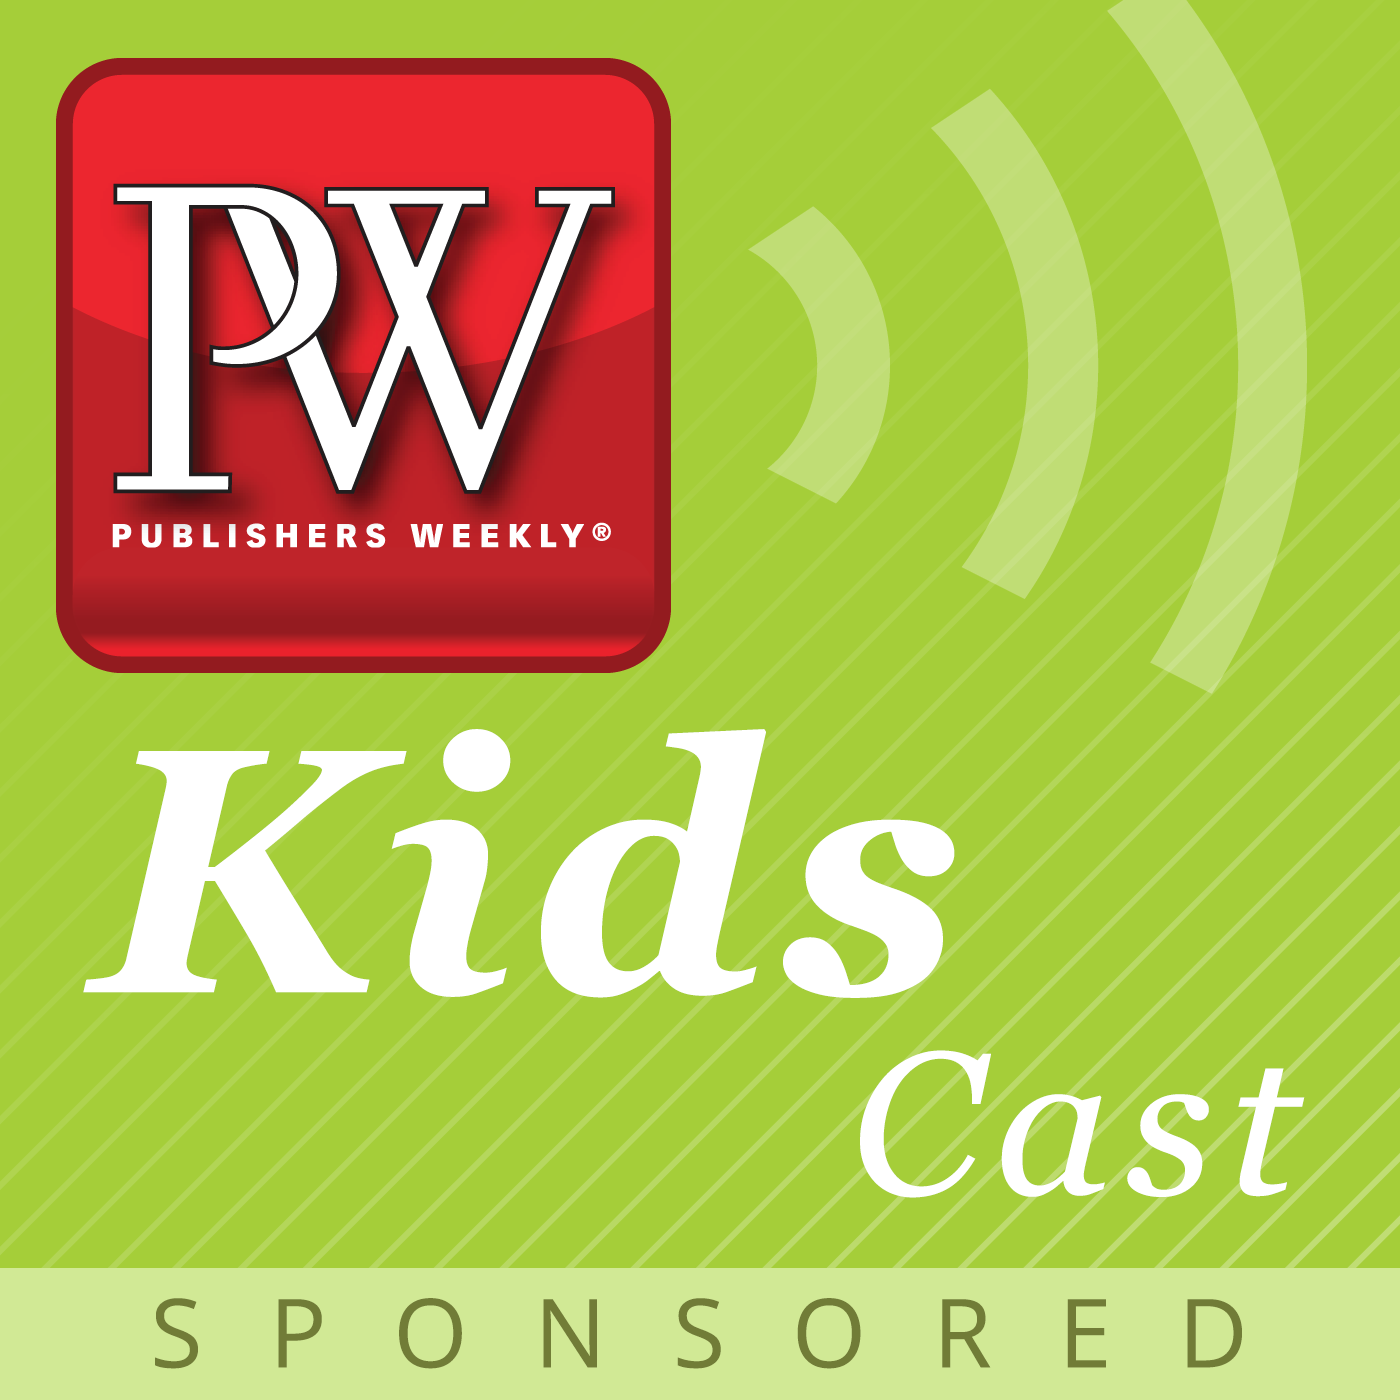 PW KidsCast: A Conversation with Hafsah Faizal